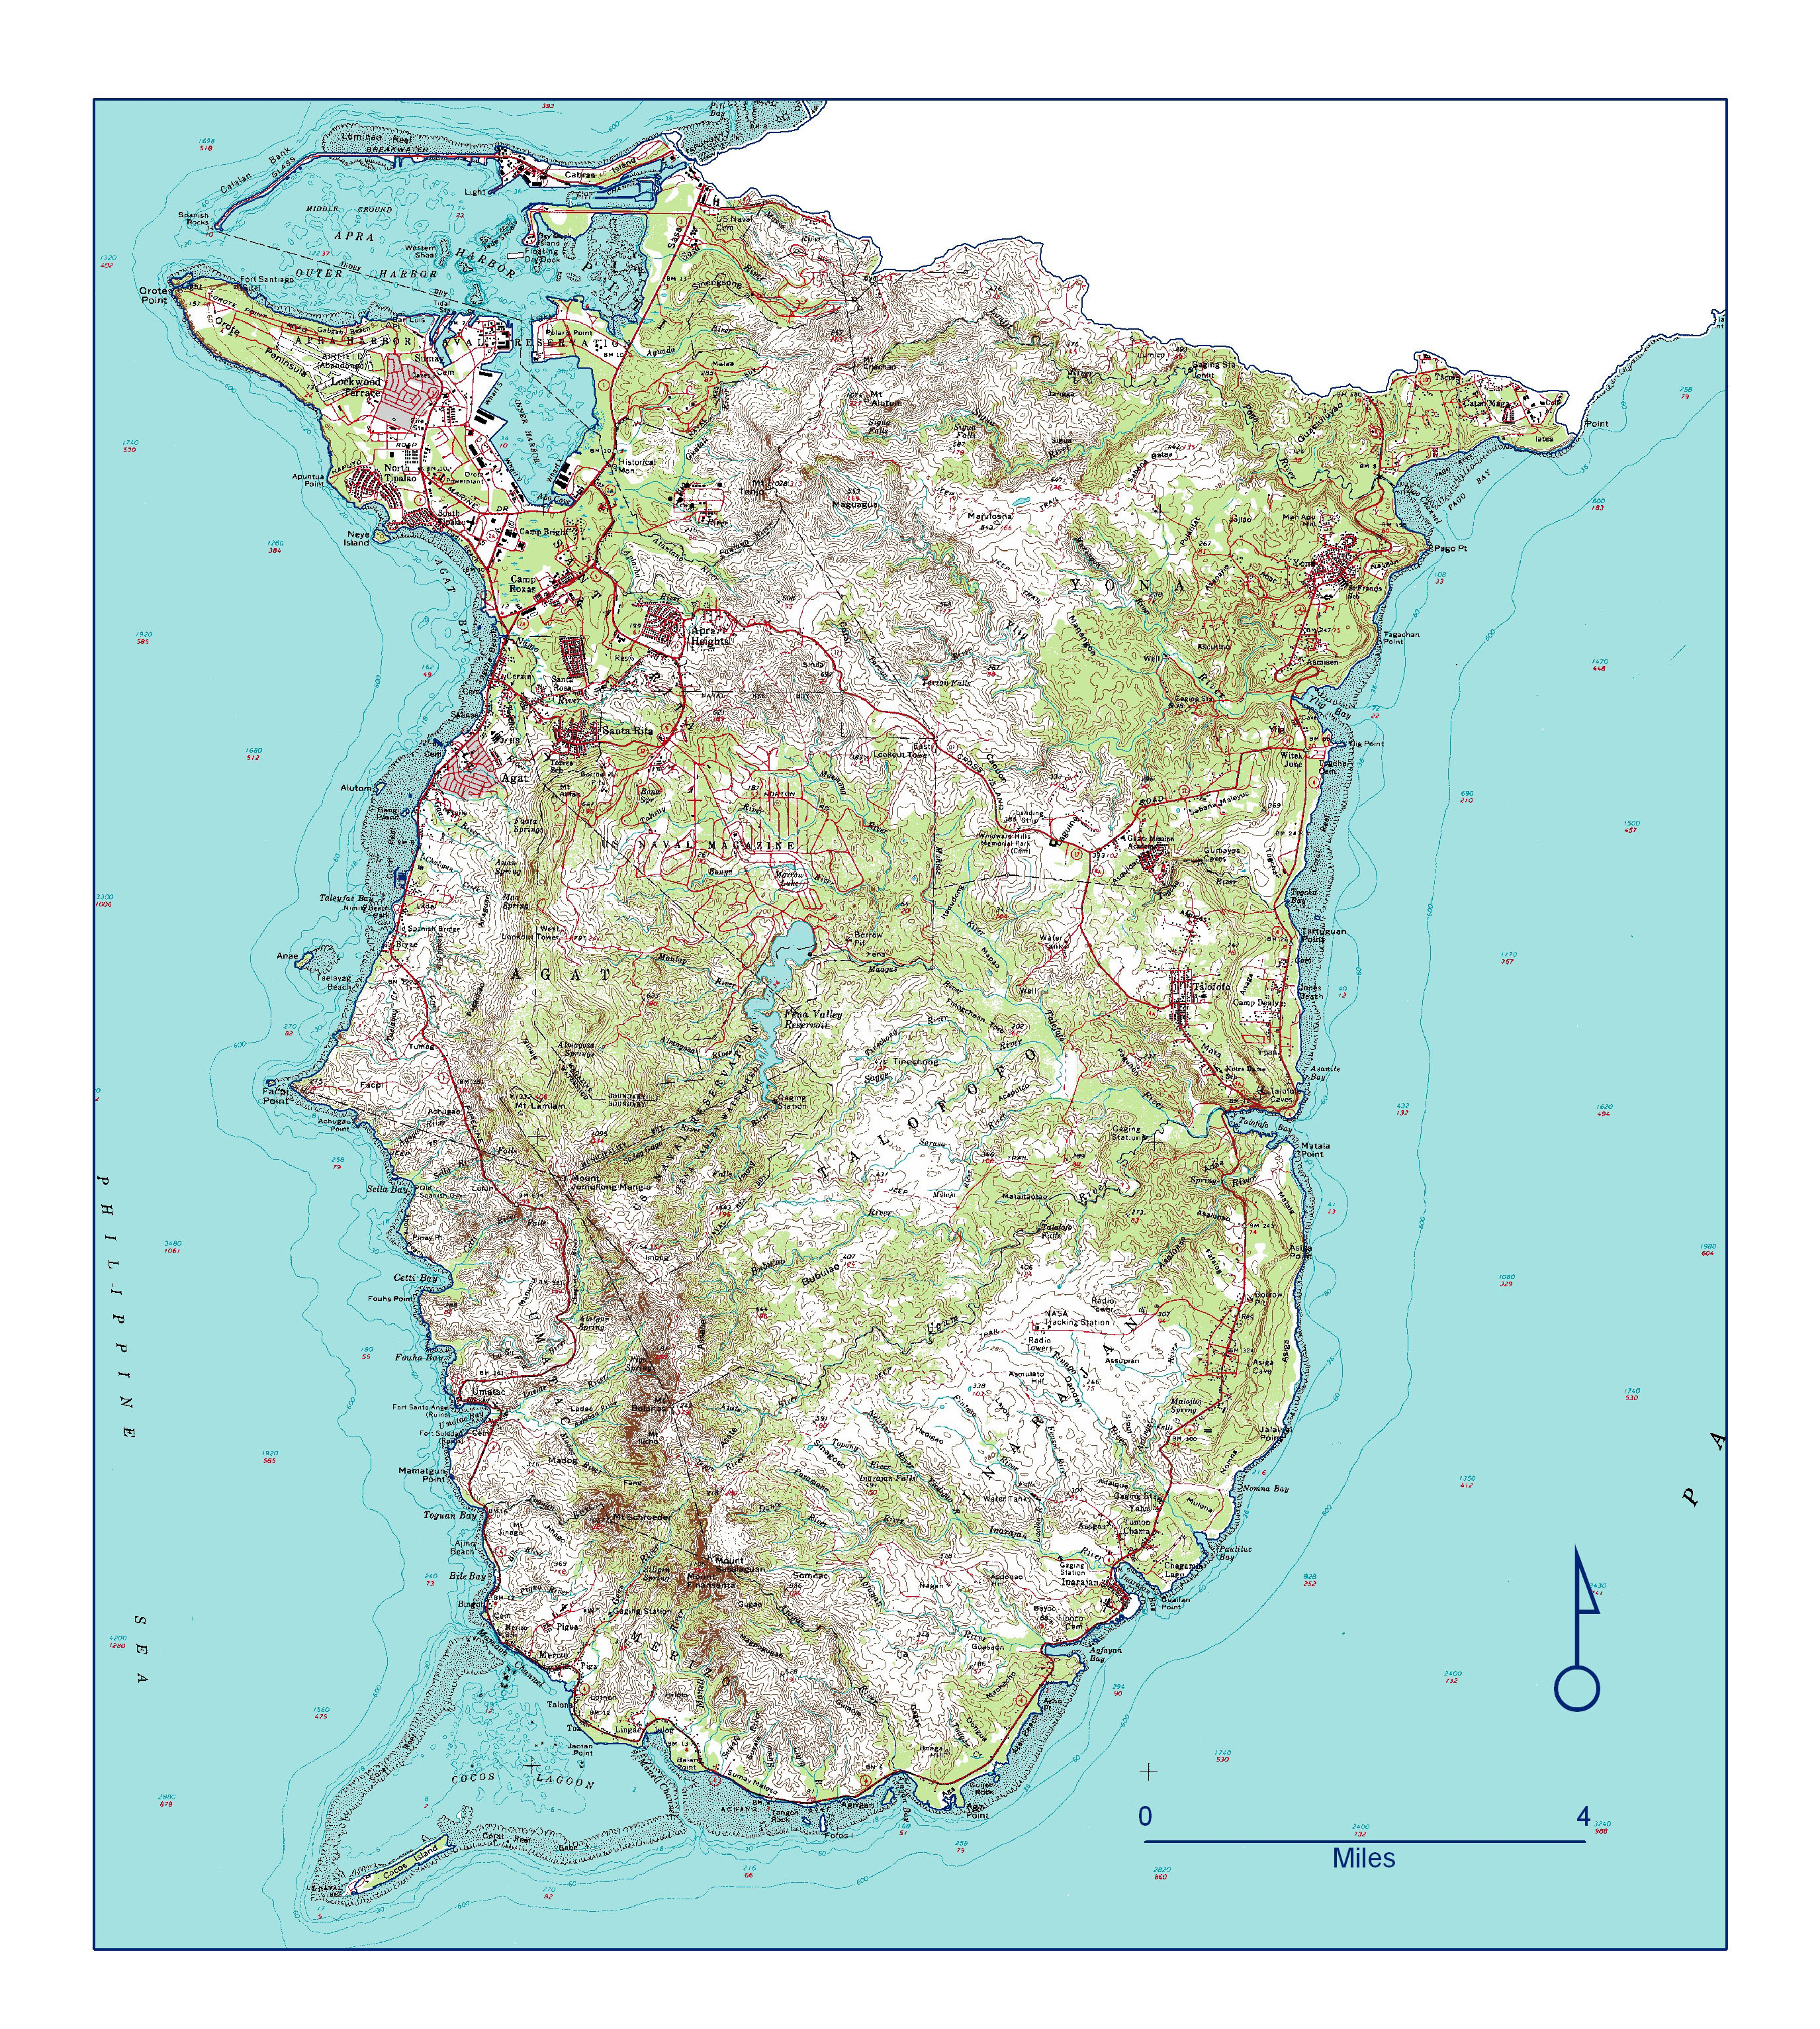 Large Detailed Topographical Map Of Southern Guam Guam Oceania - Guam map